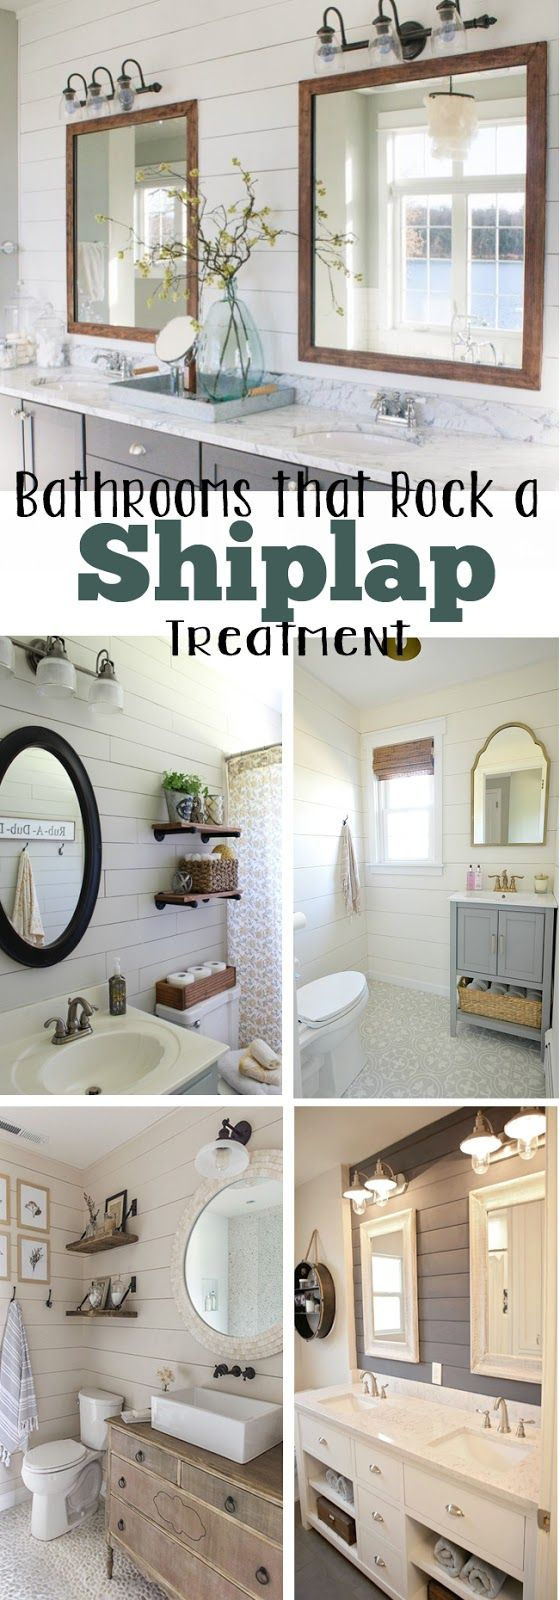 bathrooms that rock a shiplap treatment home pinterest